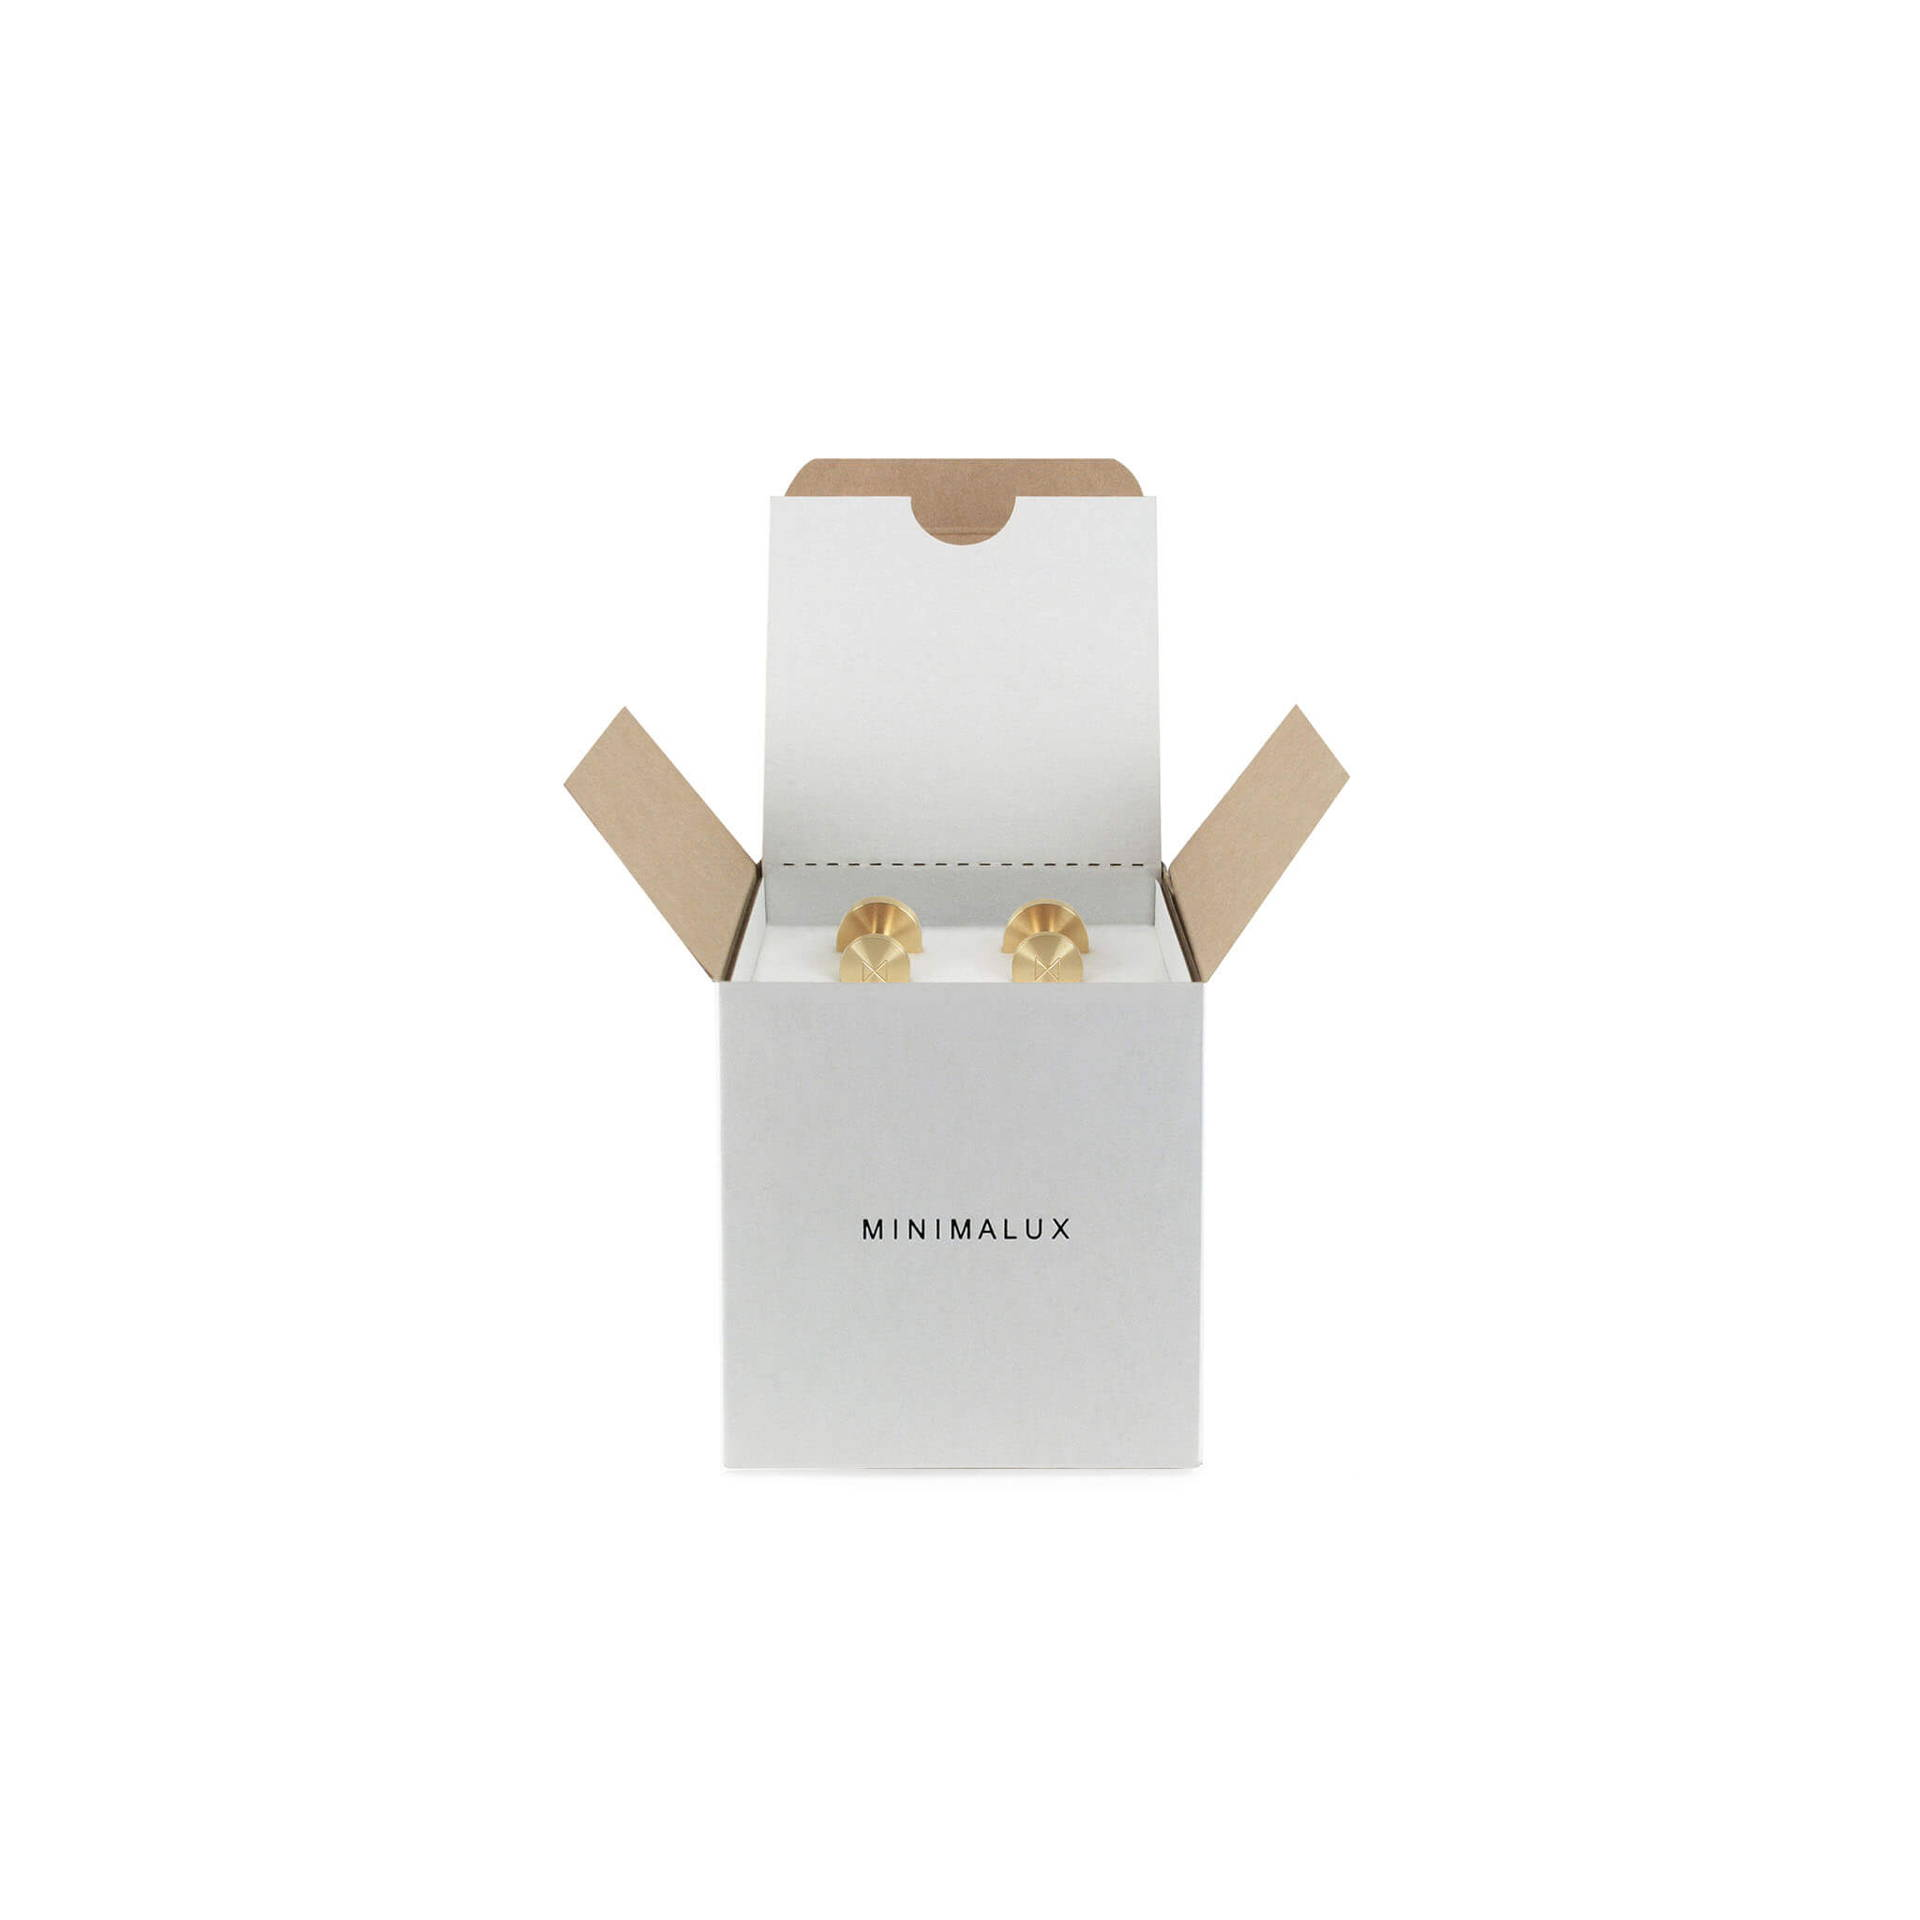 Brass Cufflink packaging